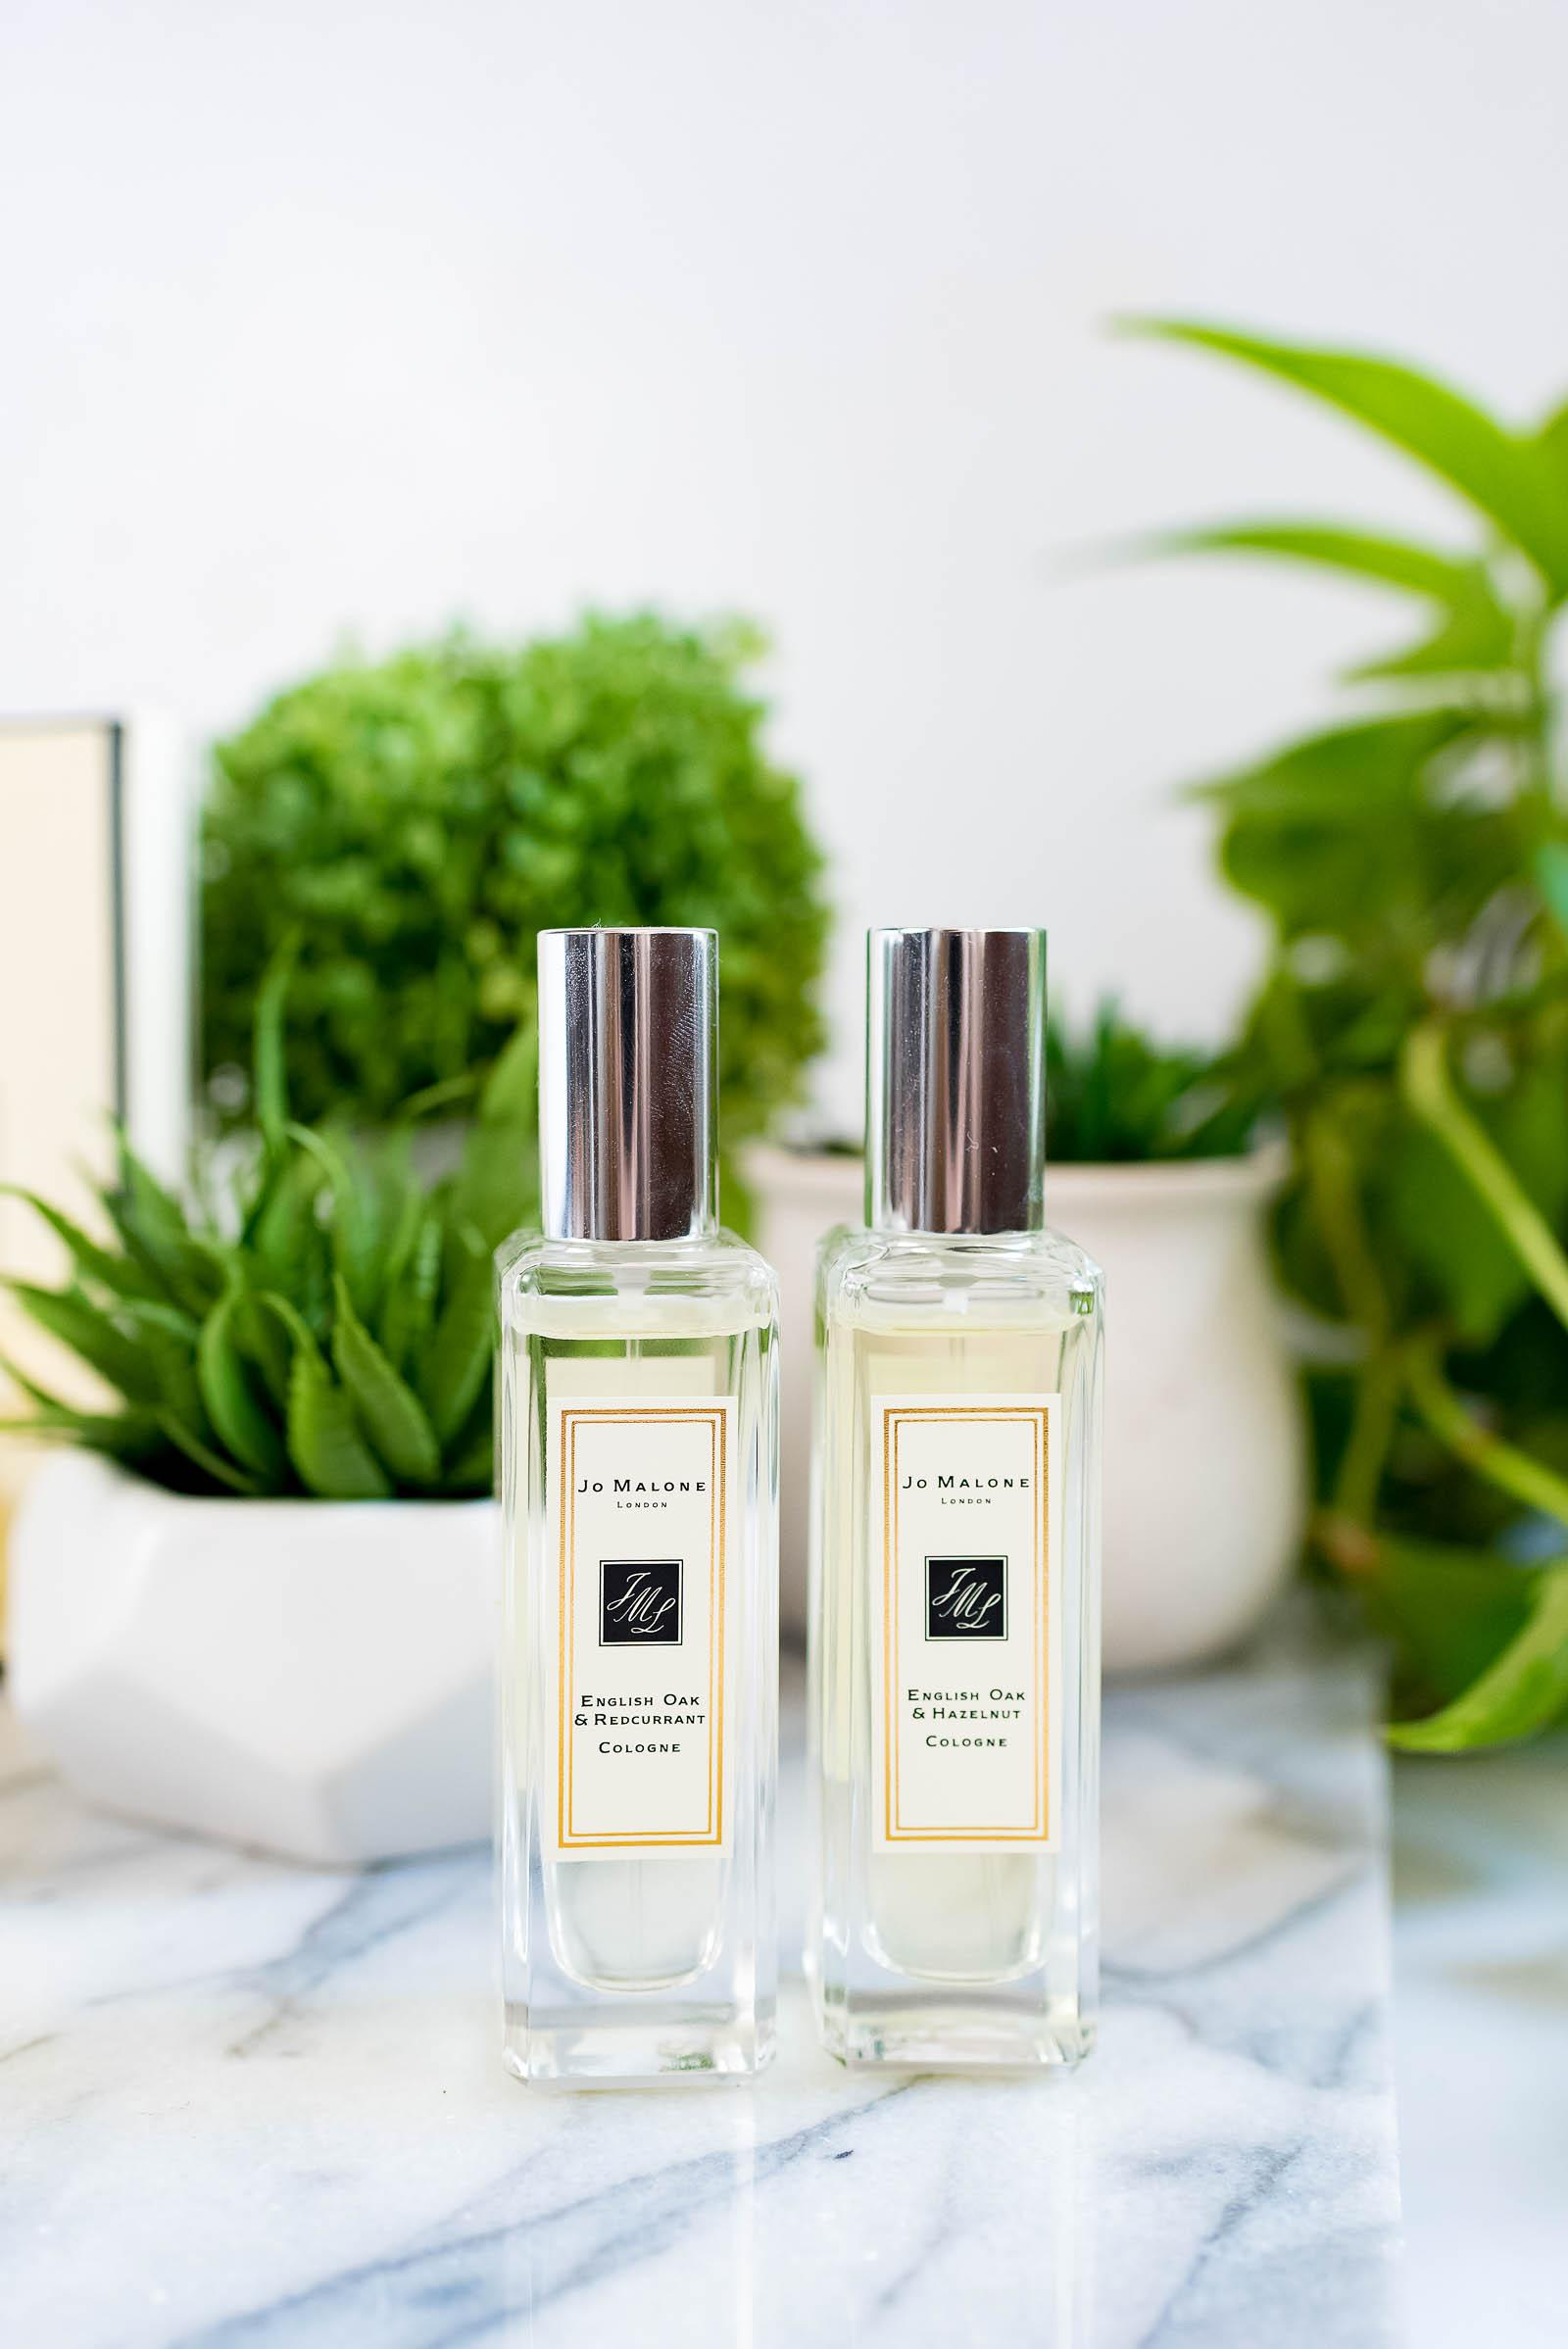 Jo Malone English Oak Cologne